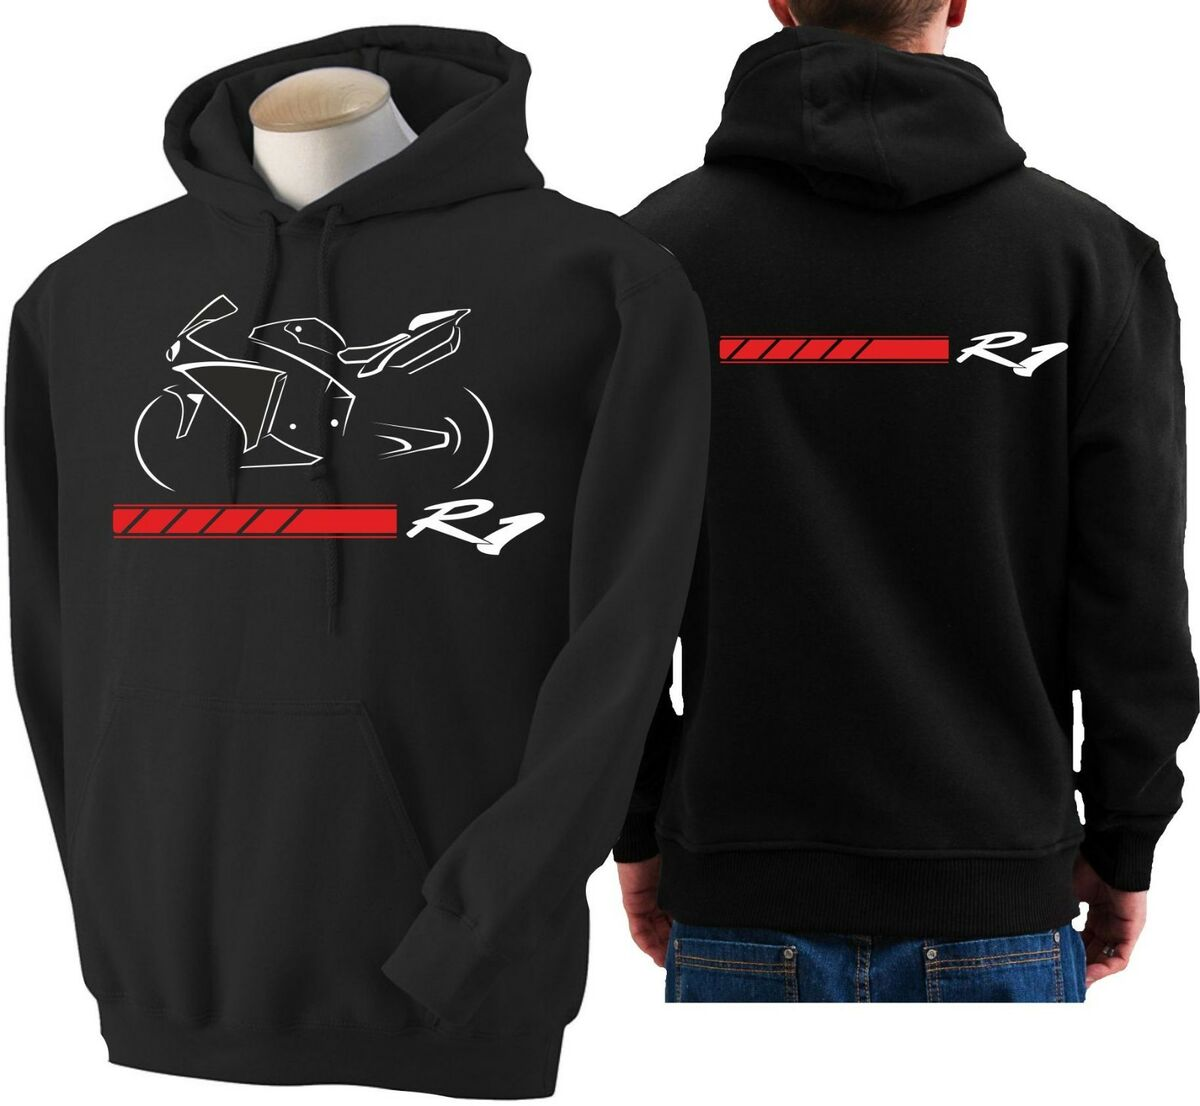 Felpa moto yamaha r1 hoodie sweatshirt bike hoody hooded sweater 